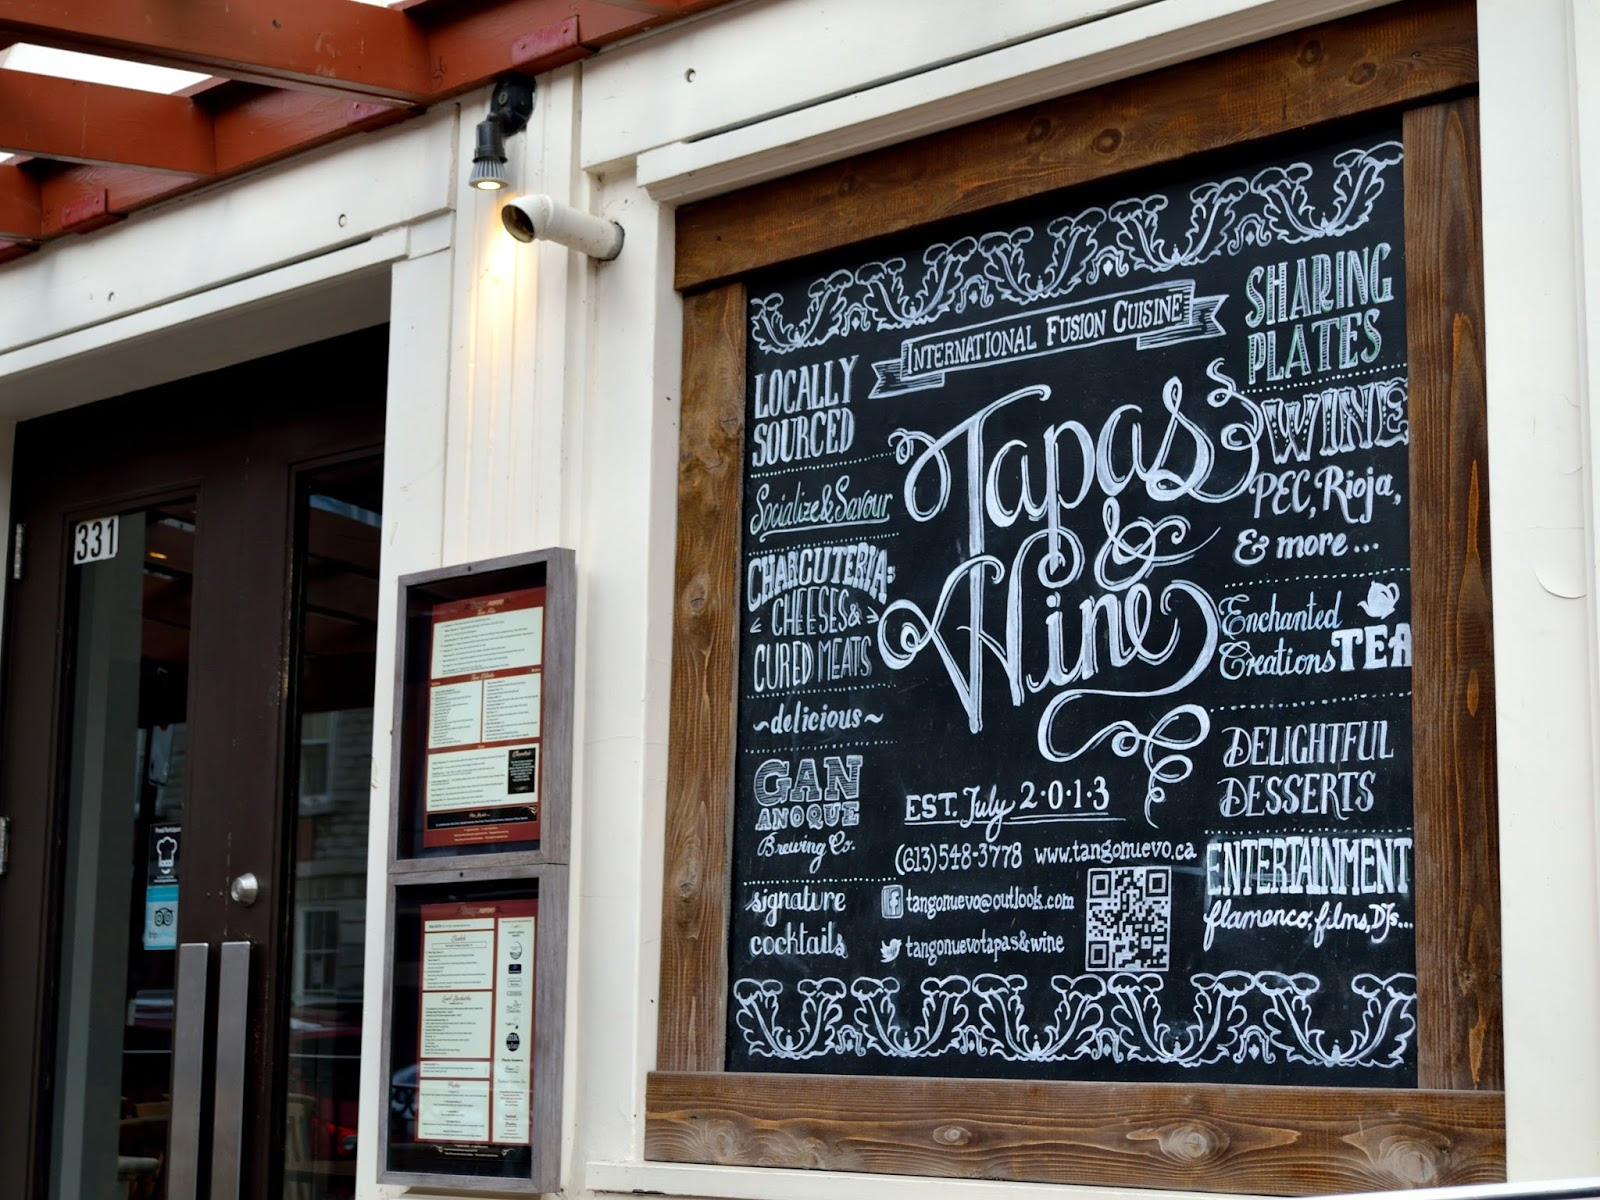 Flavours of Spain at Tango Nuevo